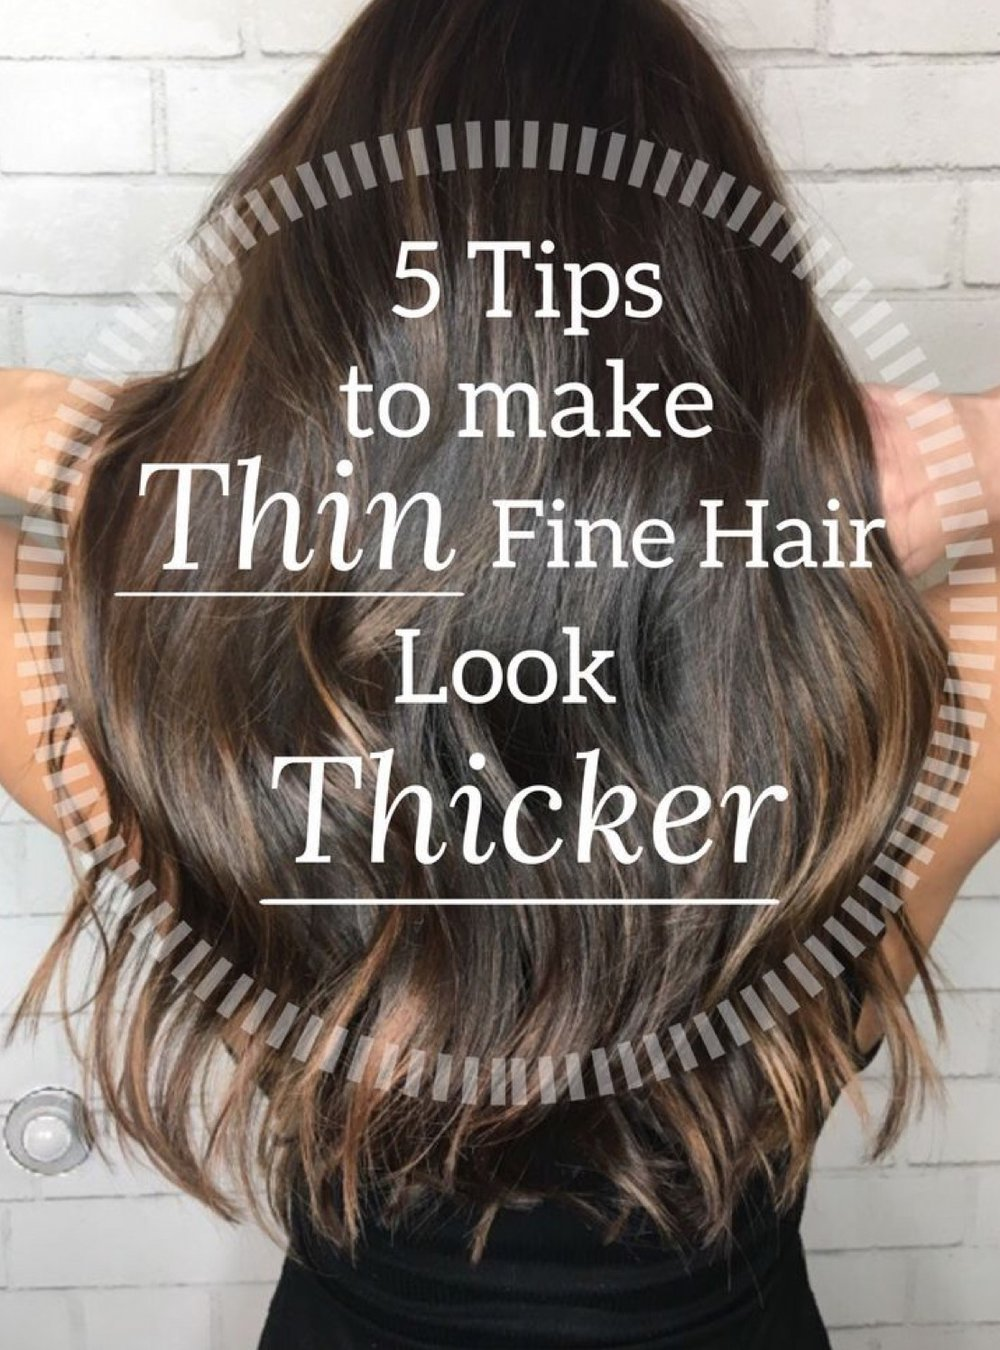 Pinterest hair tips for how to make thin hair appear fuller. Hairstyles for fine thin hair.